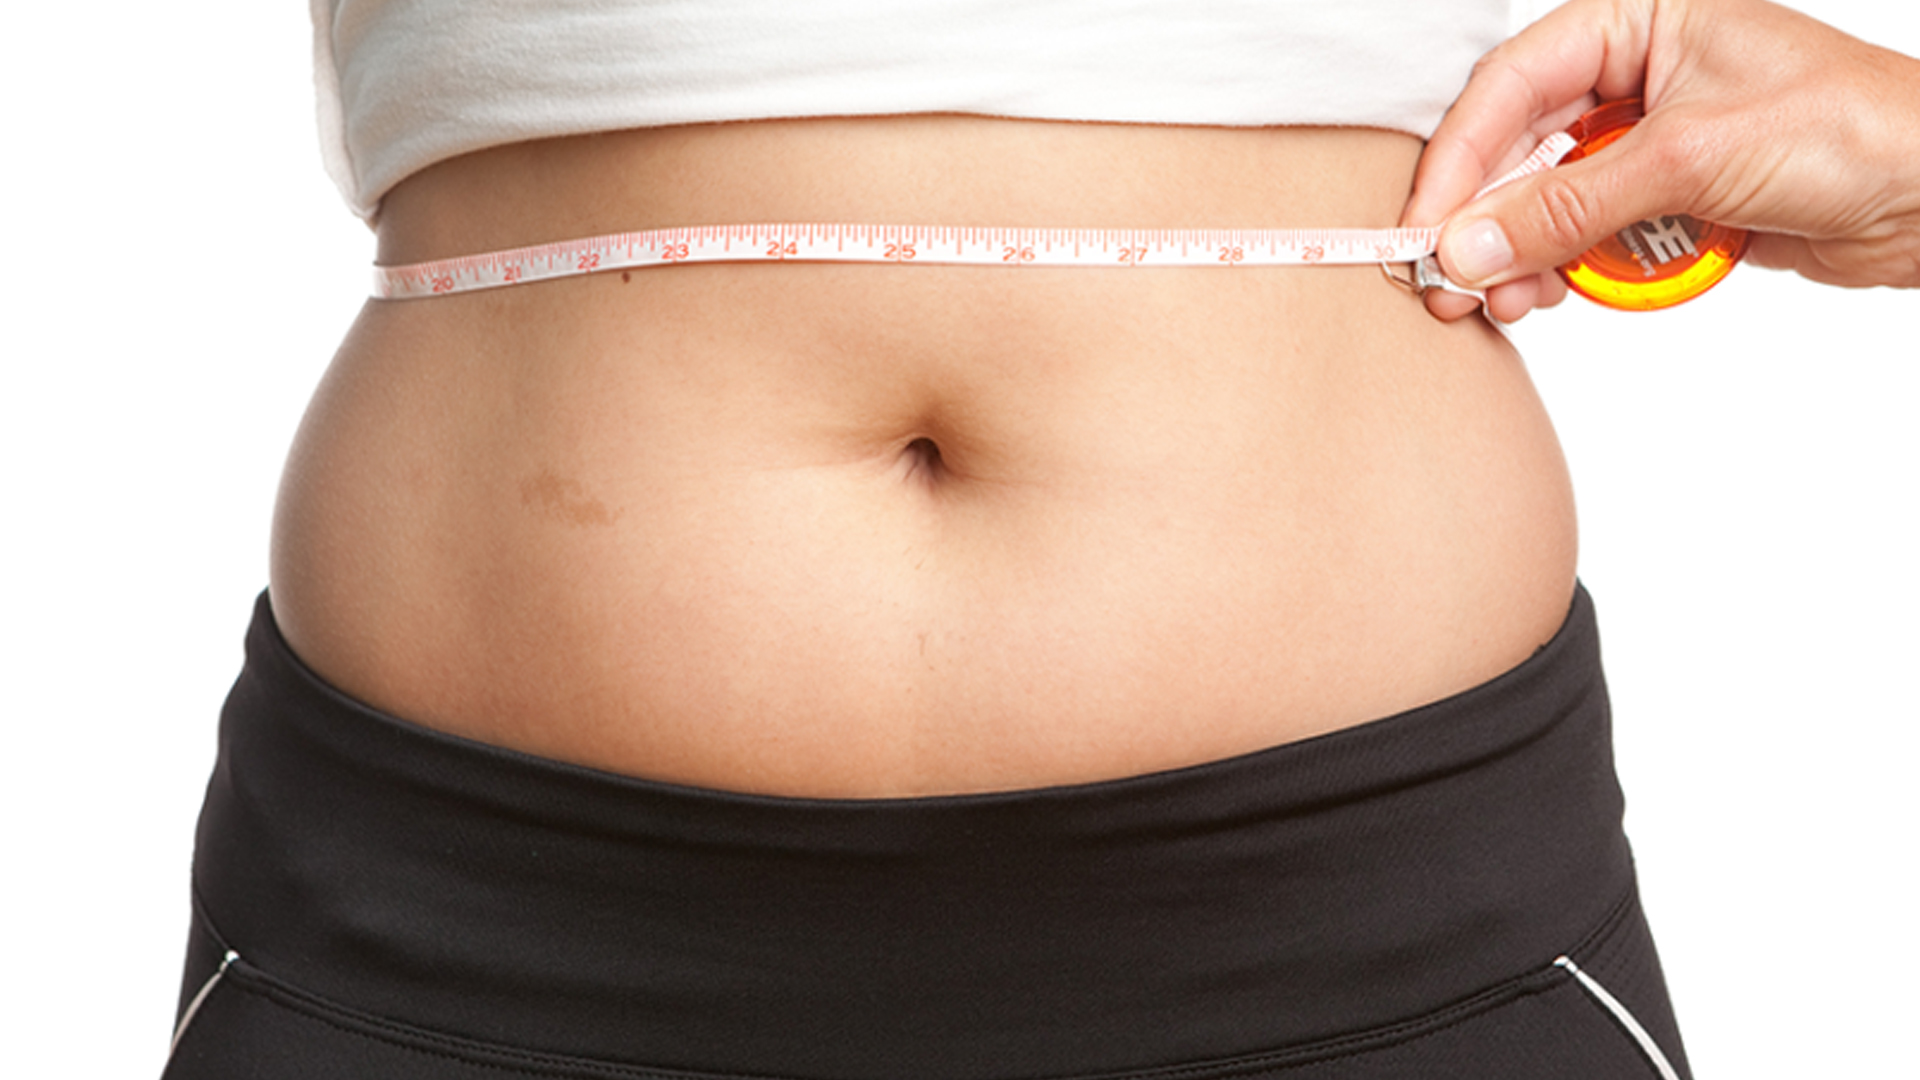 Belly Fat and Dampness: The Hidden Swelling